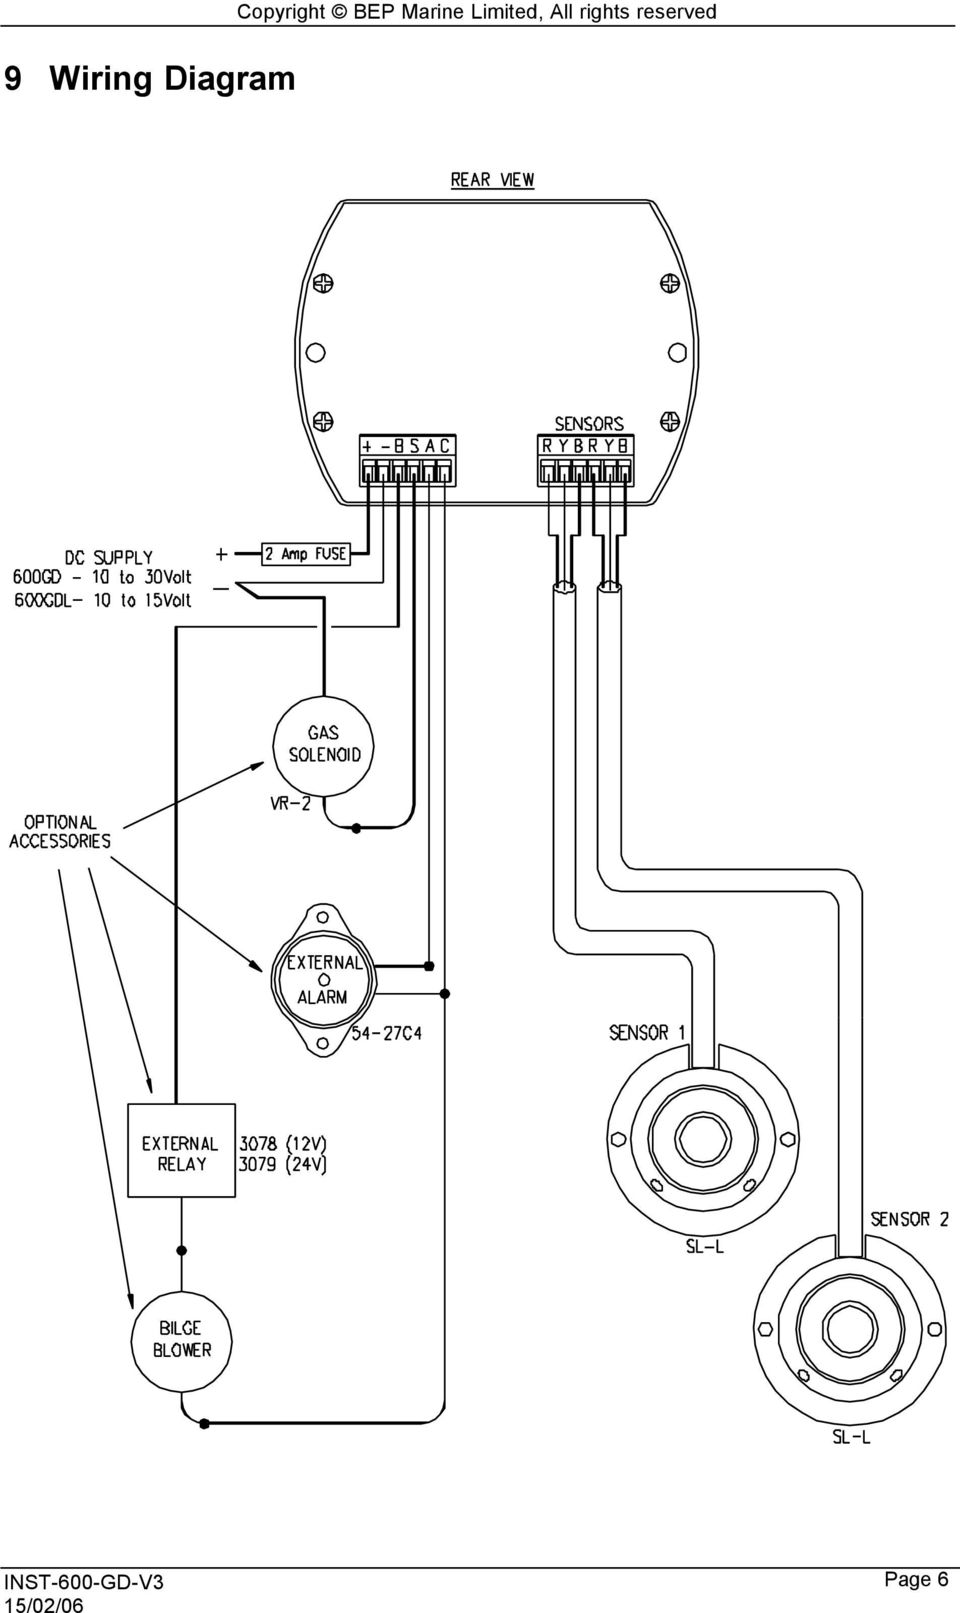 hight resolution of 8 10 control head installation copyright bep marine limited all rights reserved for ease of operation the control head should be mounted in a convenient